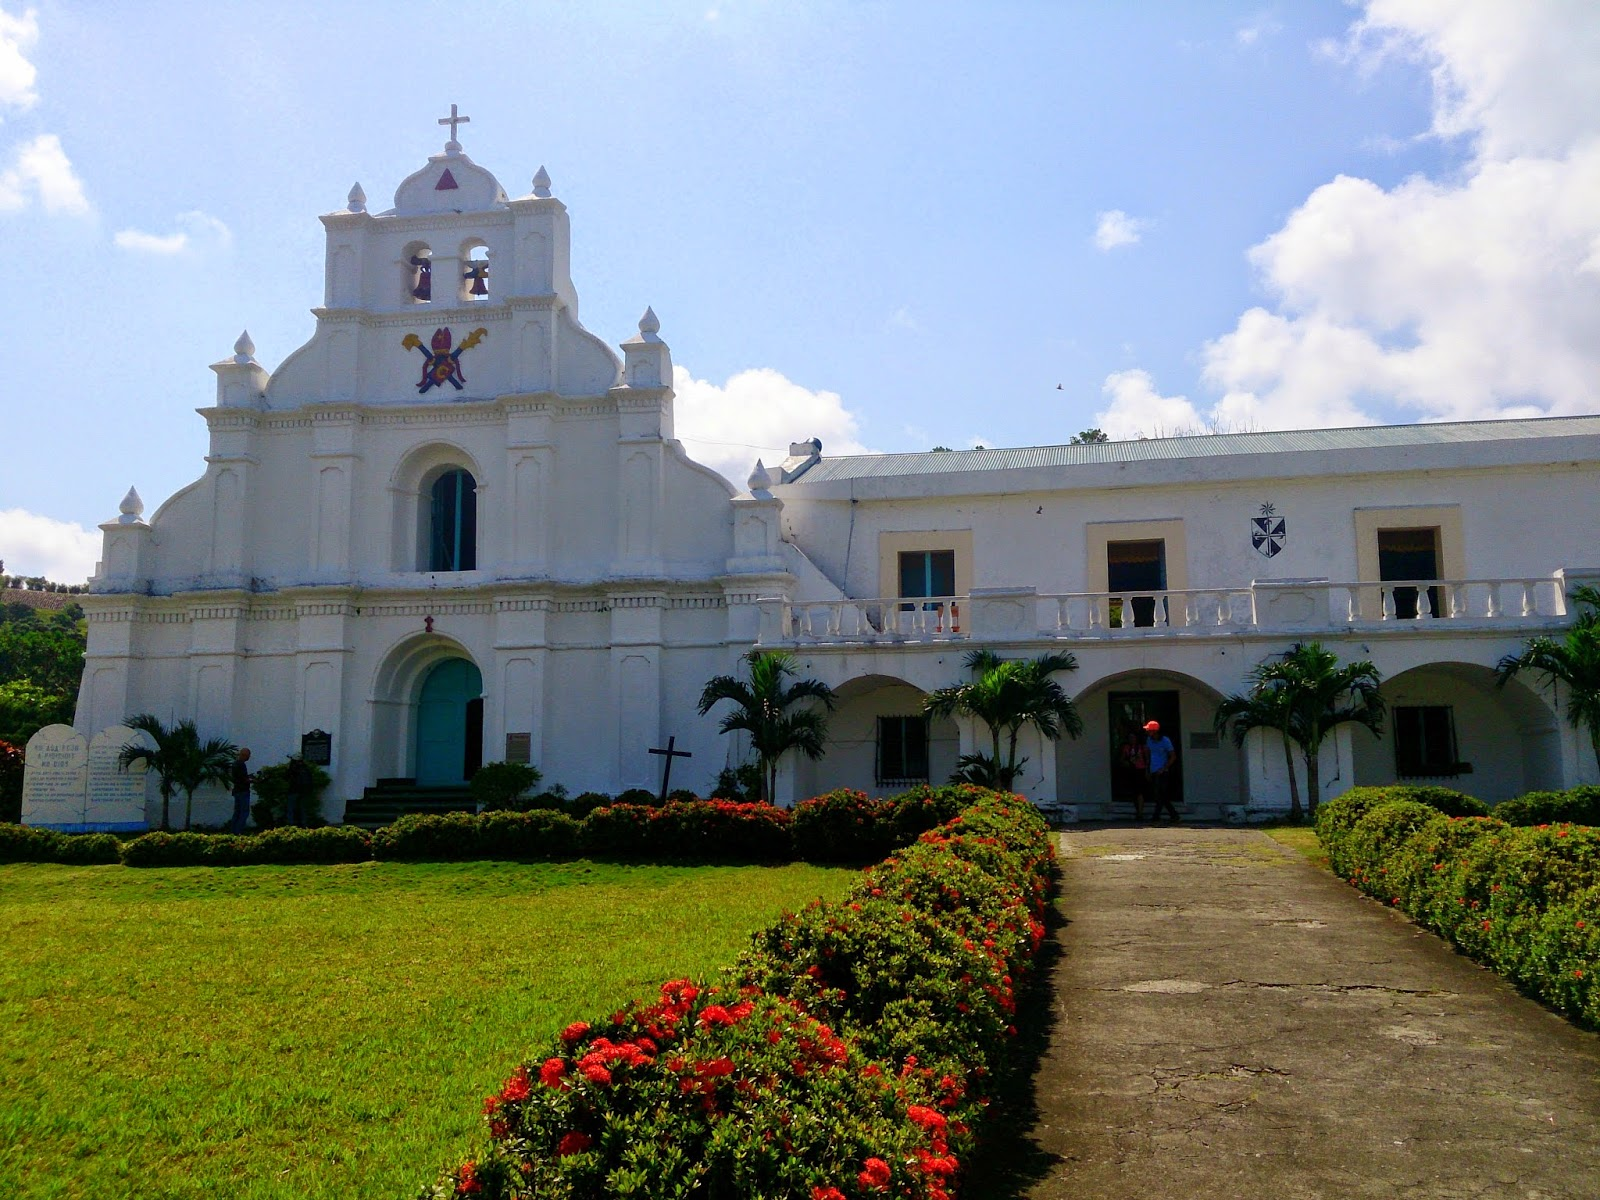 San Carlos Borromeo Church, South Batan, Batanes